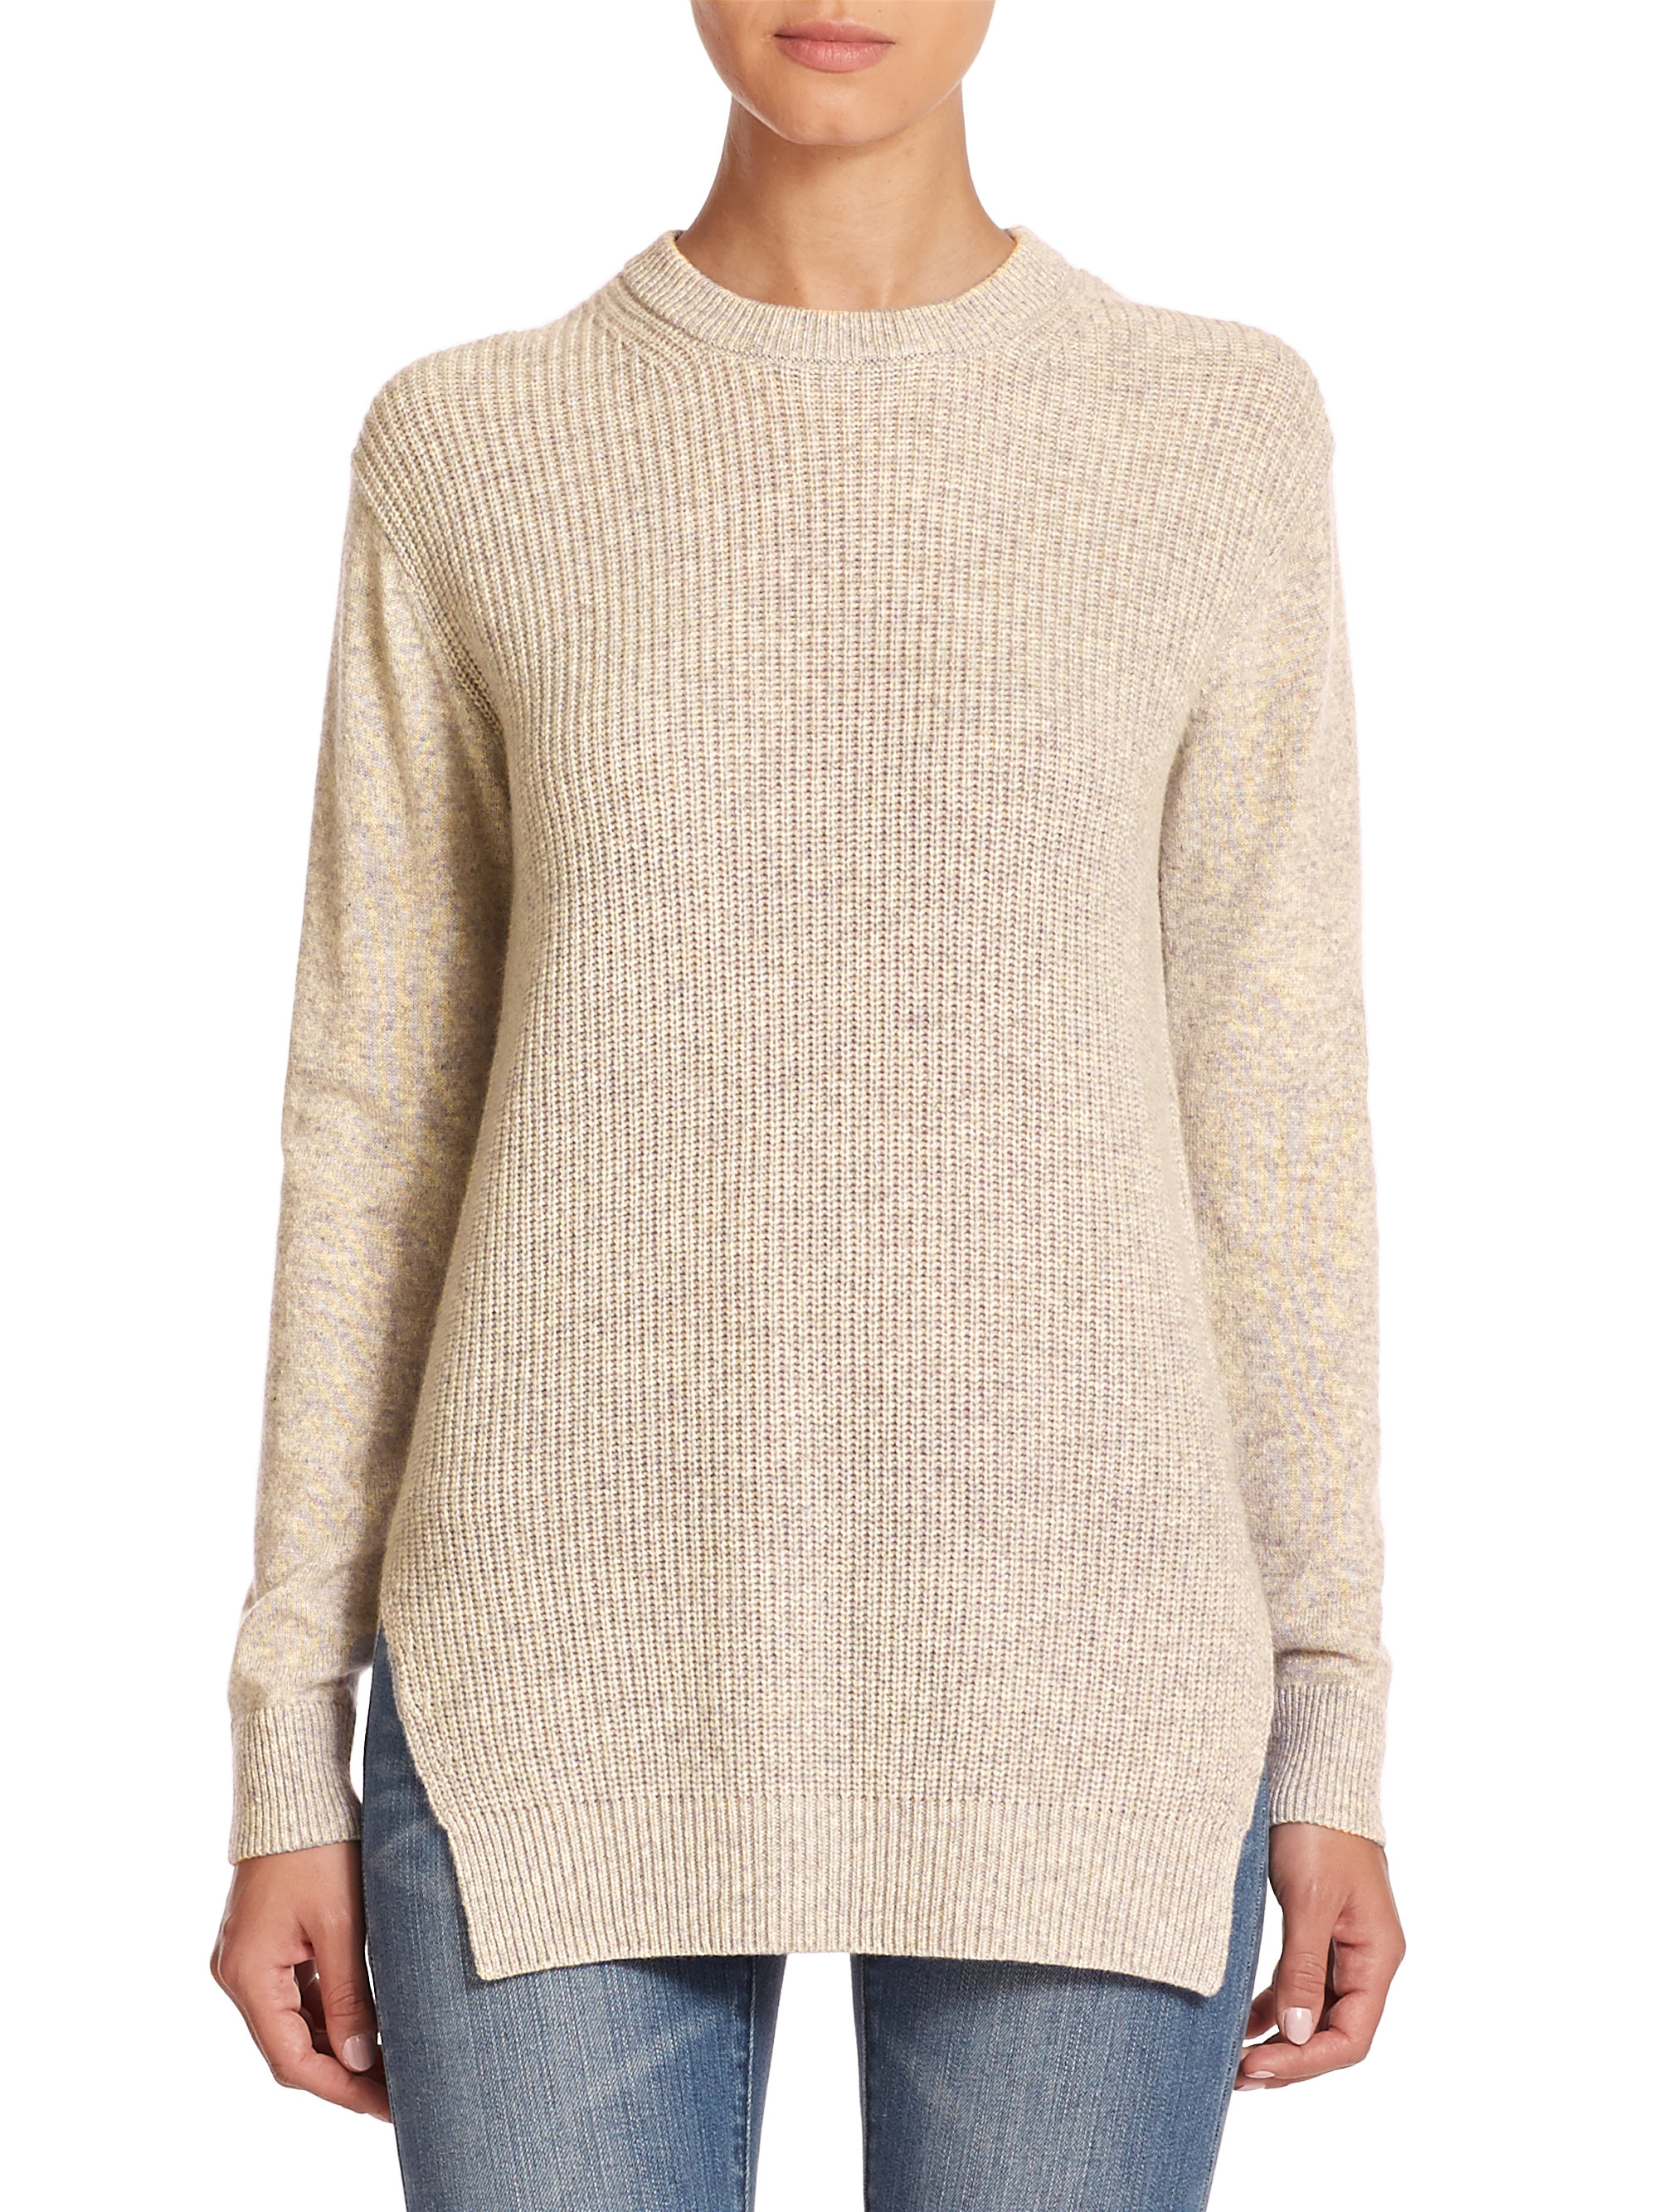 Lyst - MICHAEL Michael Kors Shaker-knit Cashmere Sweater in Natural 685b0bf58